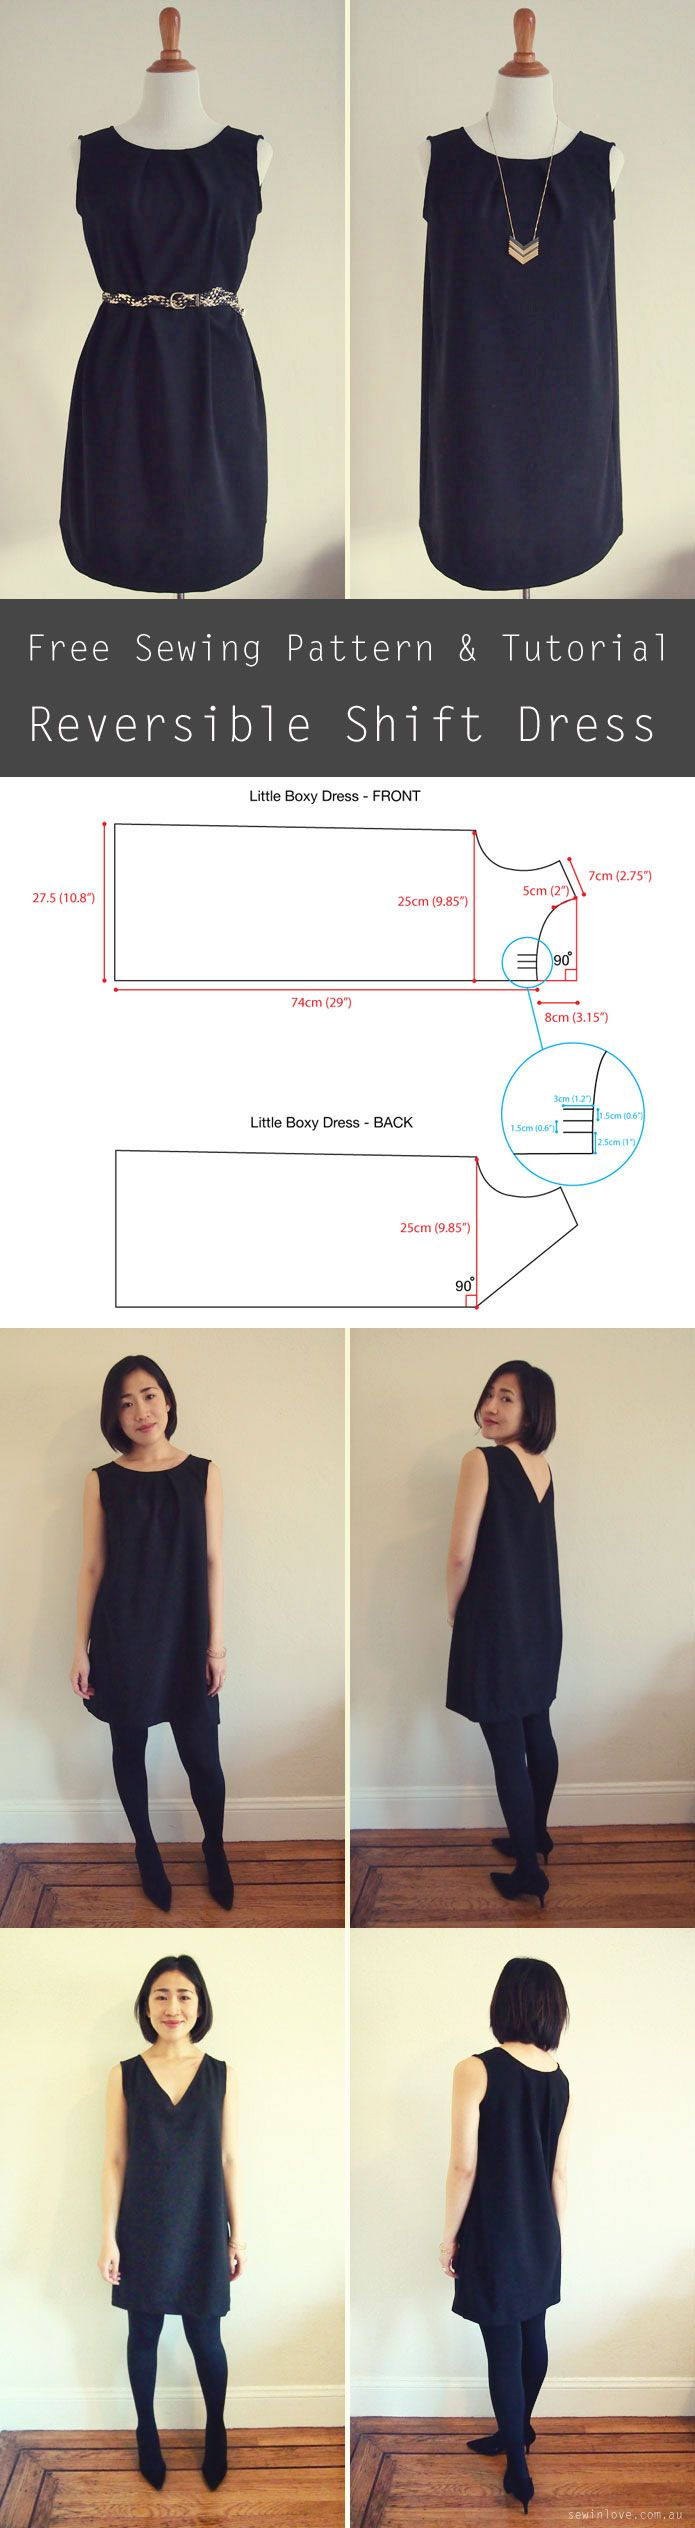 Free-sewing-pattern-LBD-Pinterest